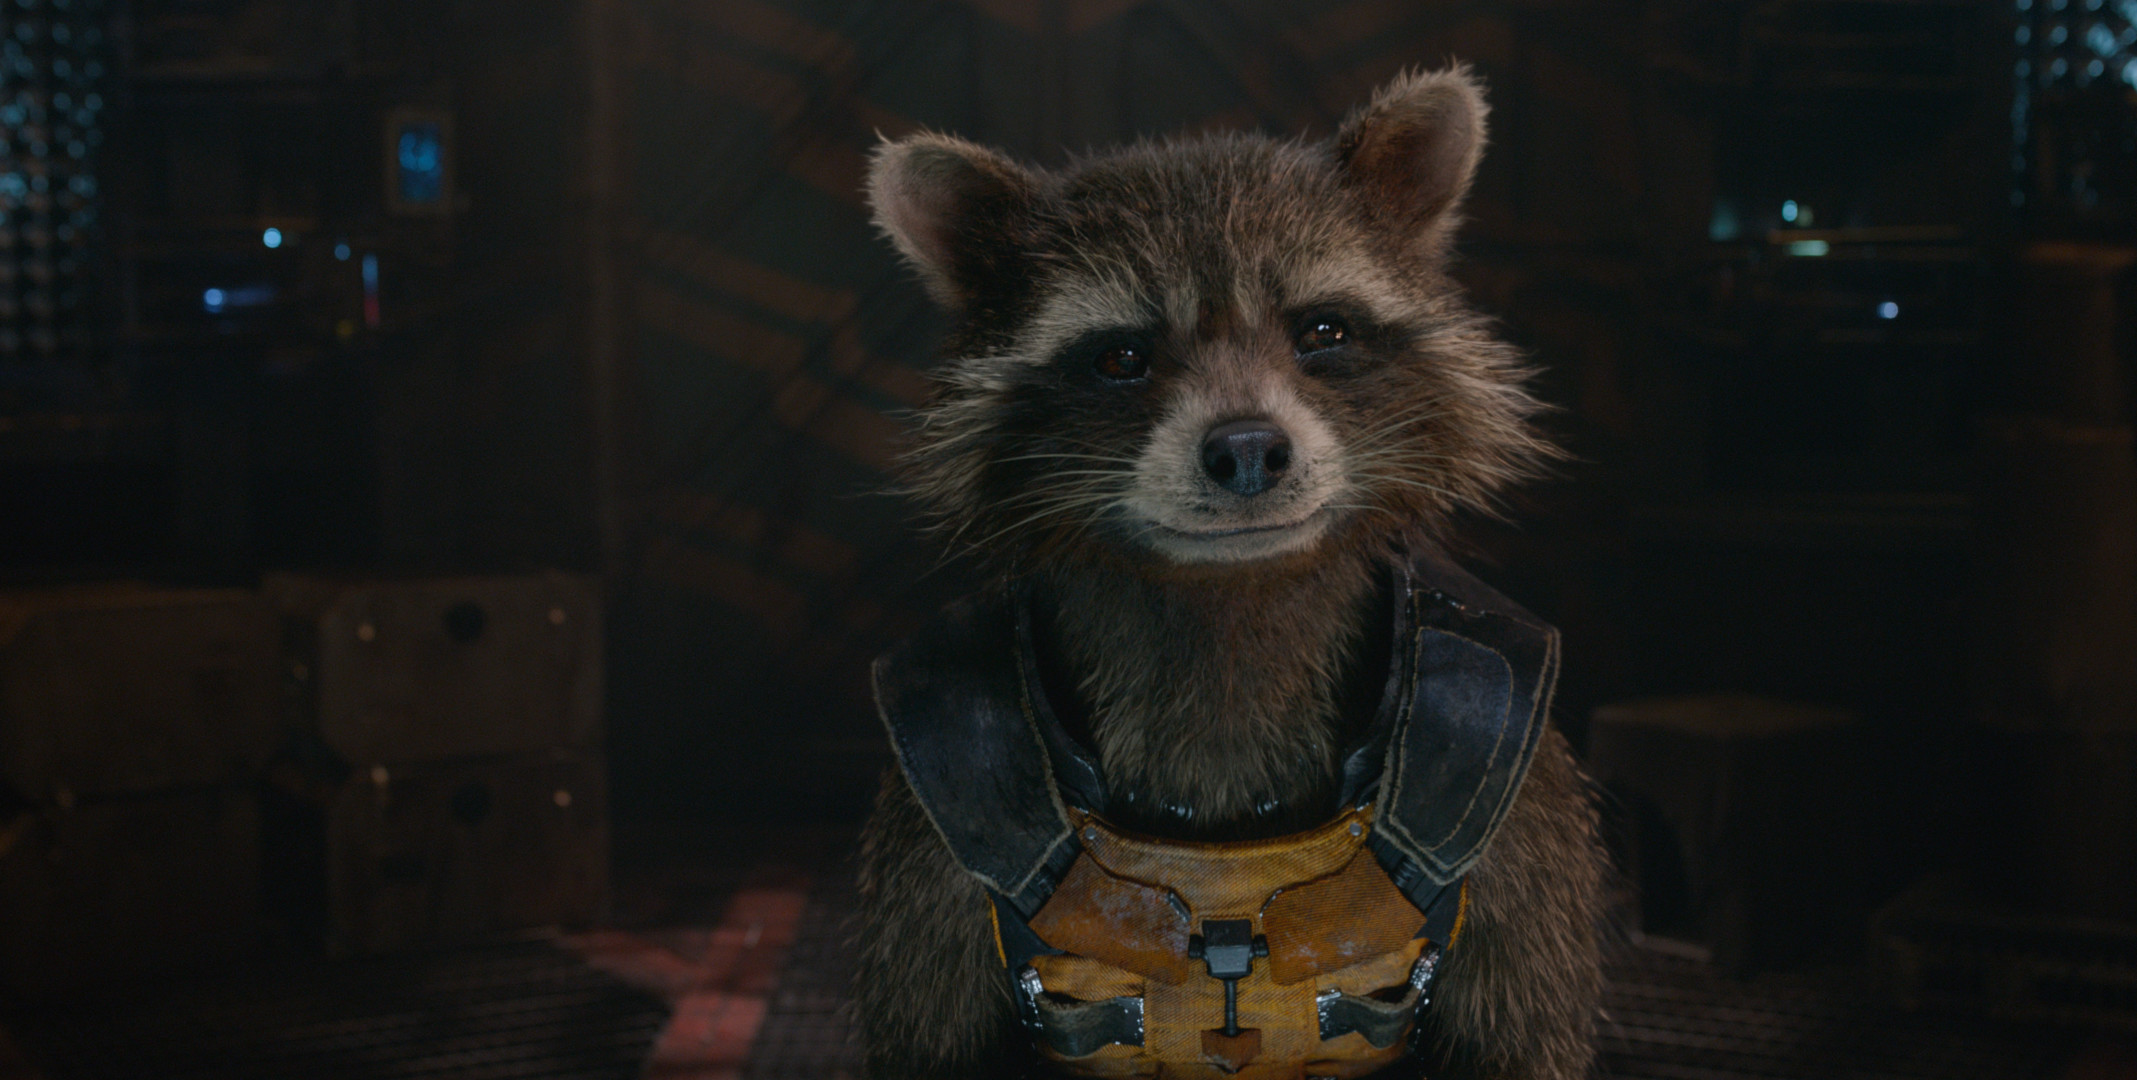 2137x1080 Rocket Raccoon From Marvel's Guardians of the Galaxy wallpaper - Click  picture for high resolution HD wallpaper